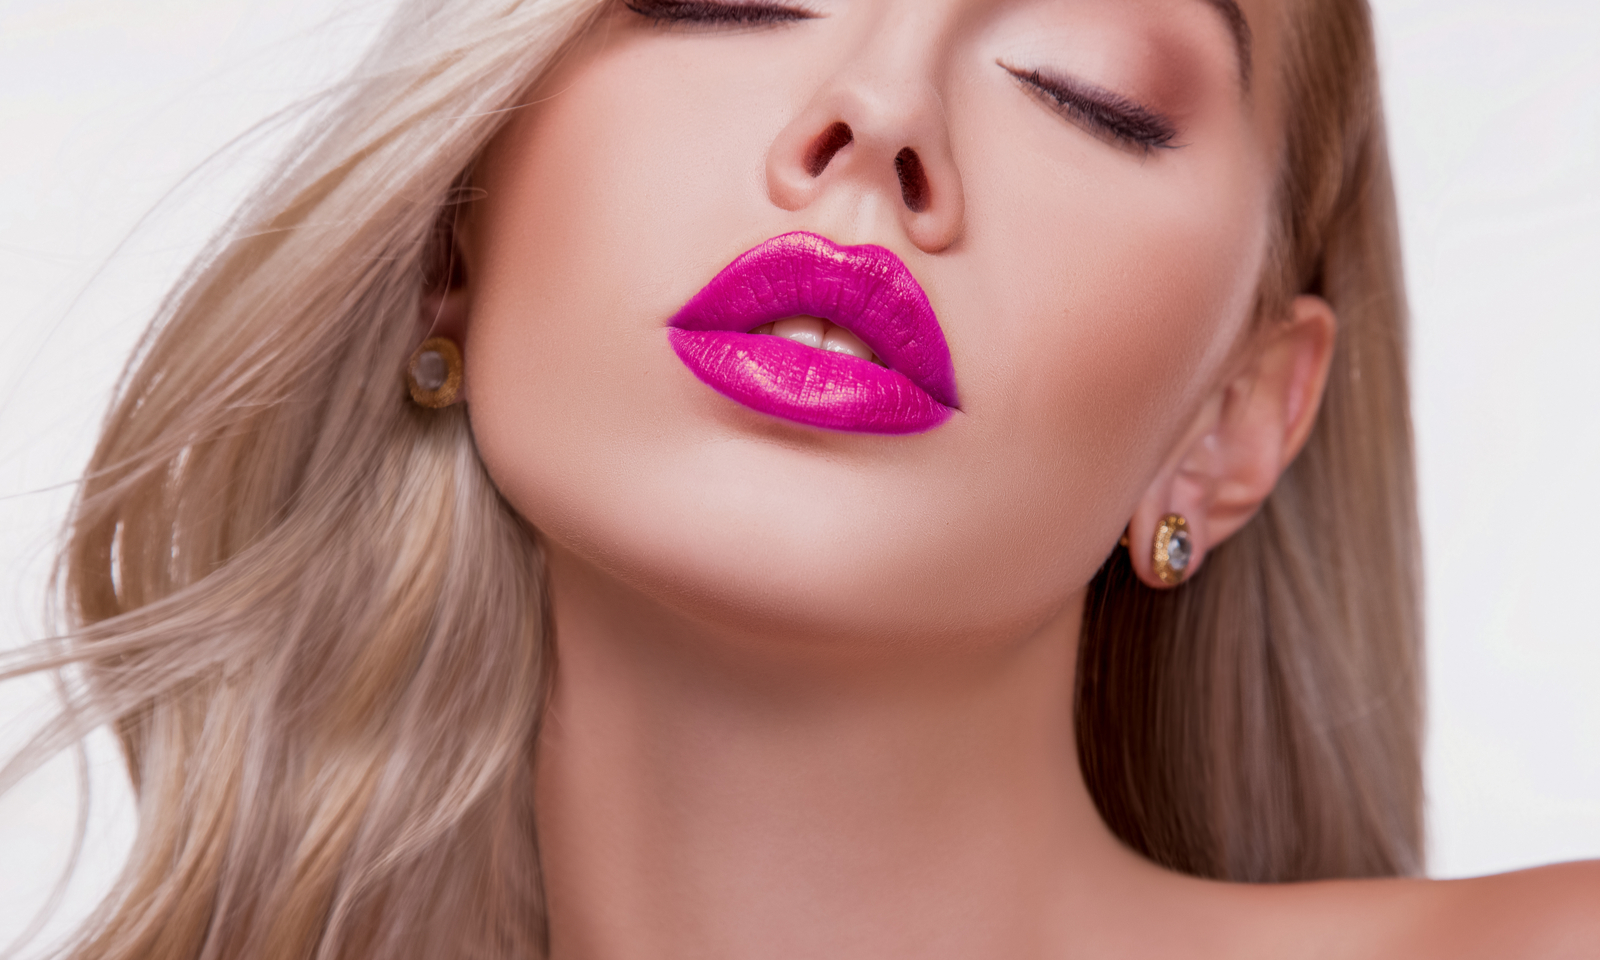 5 Genius Tips to Make Your Lips Fuller Without Injections